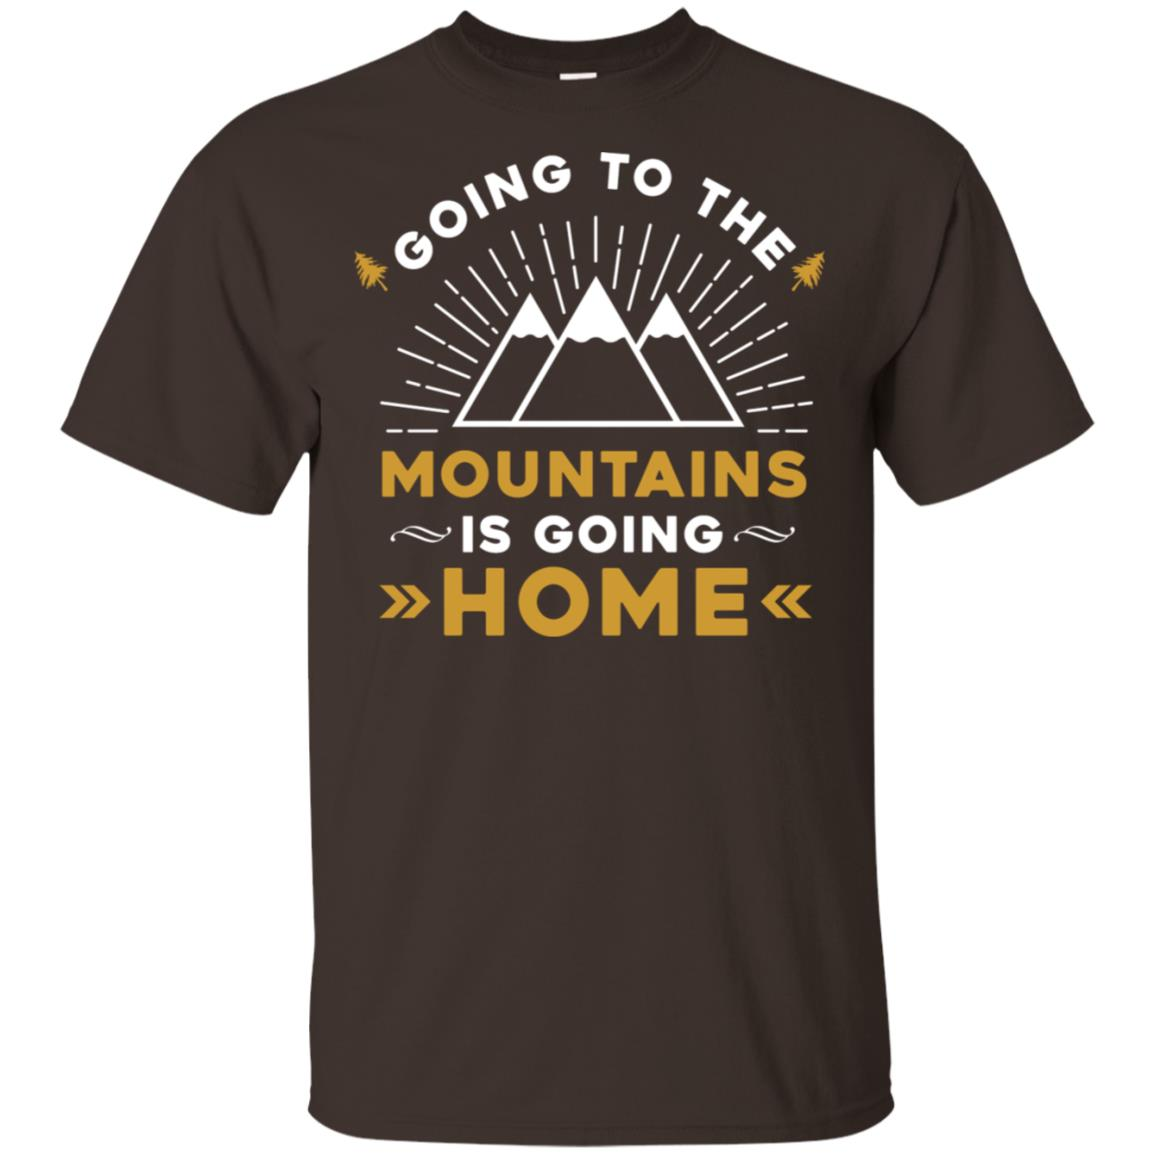 Going to the mountains is going home Unisex Short Sleeve